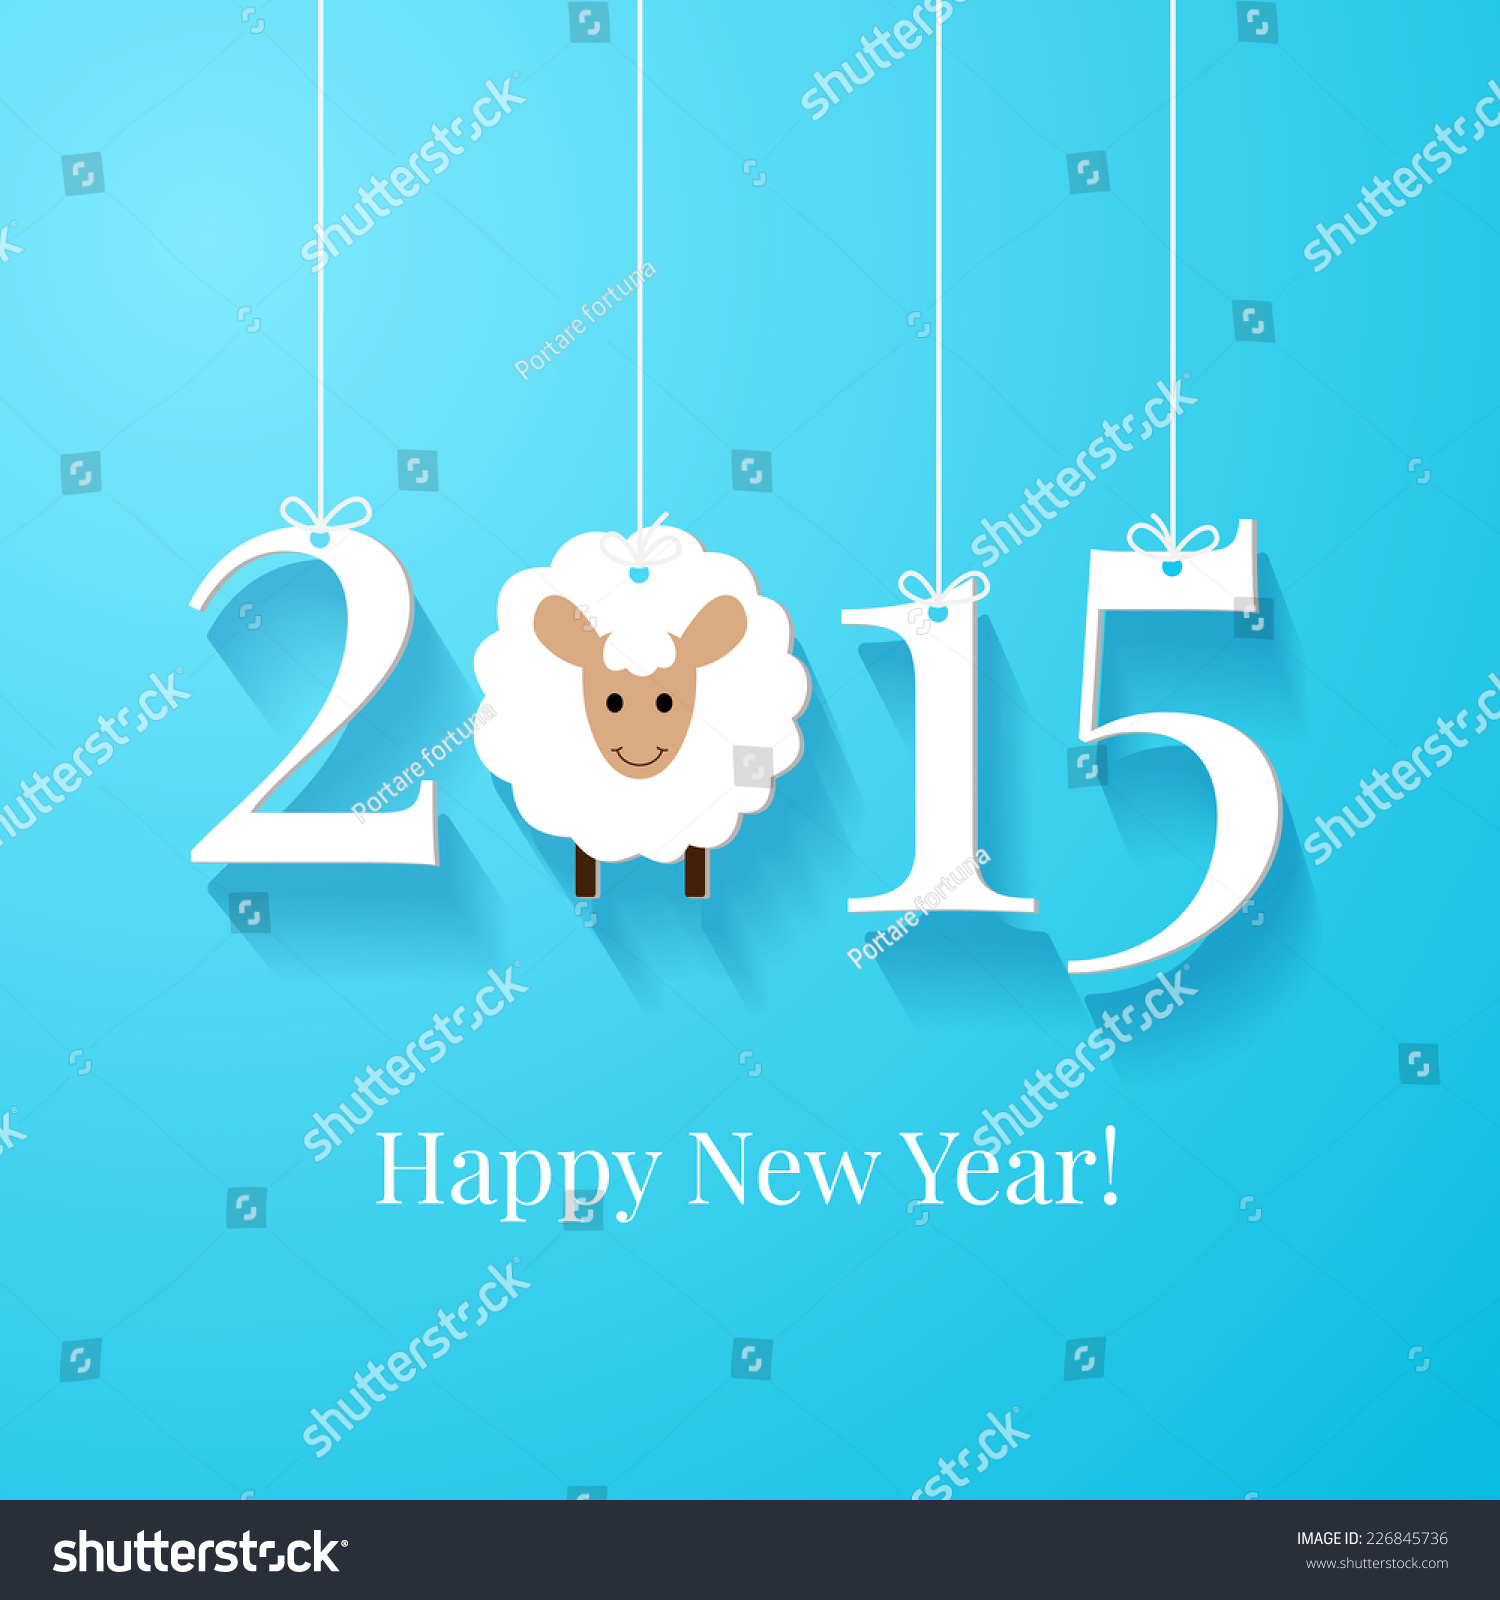 Happy New Year Greetings Card Background Stock Vector Royalty Free